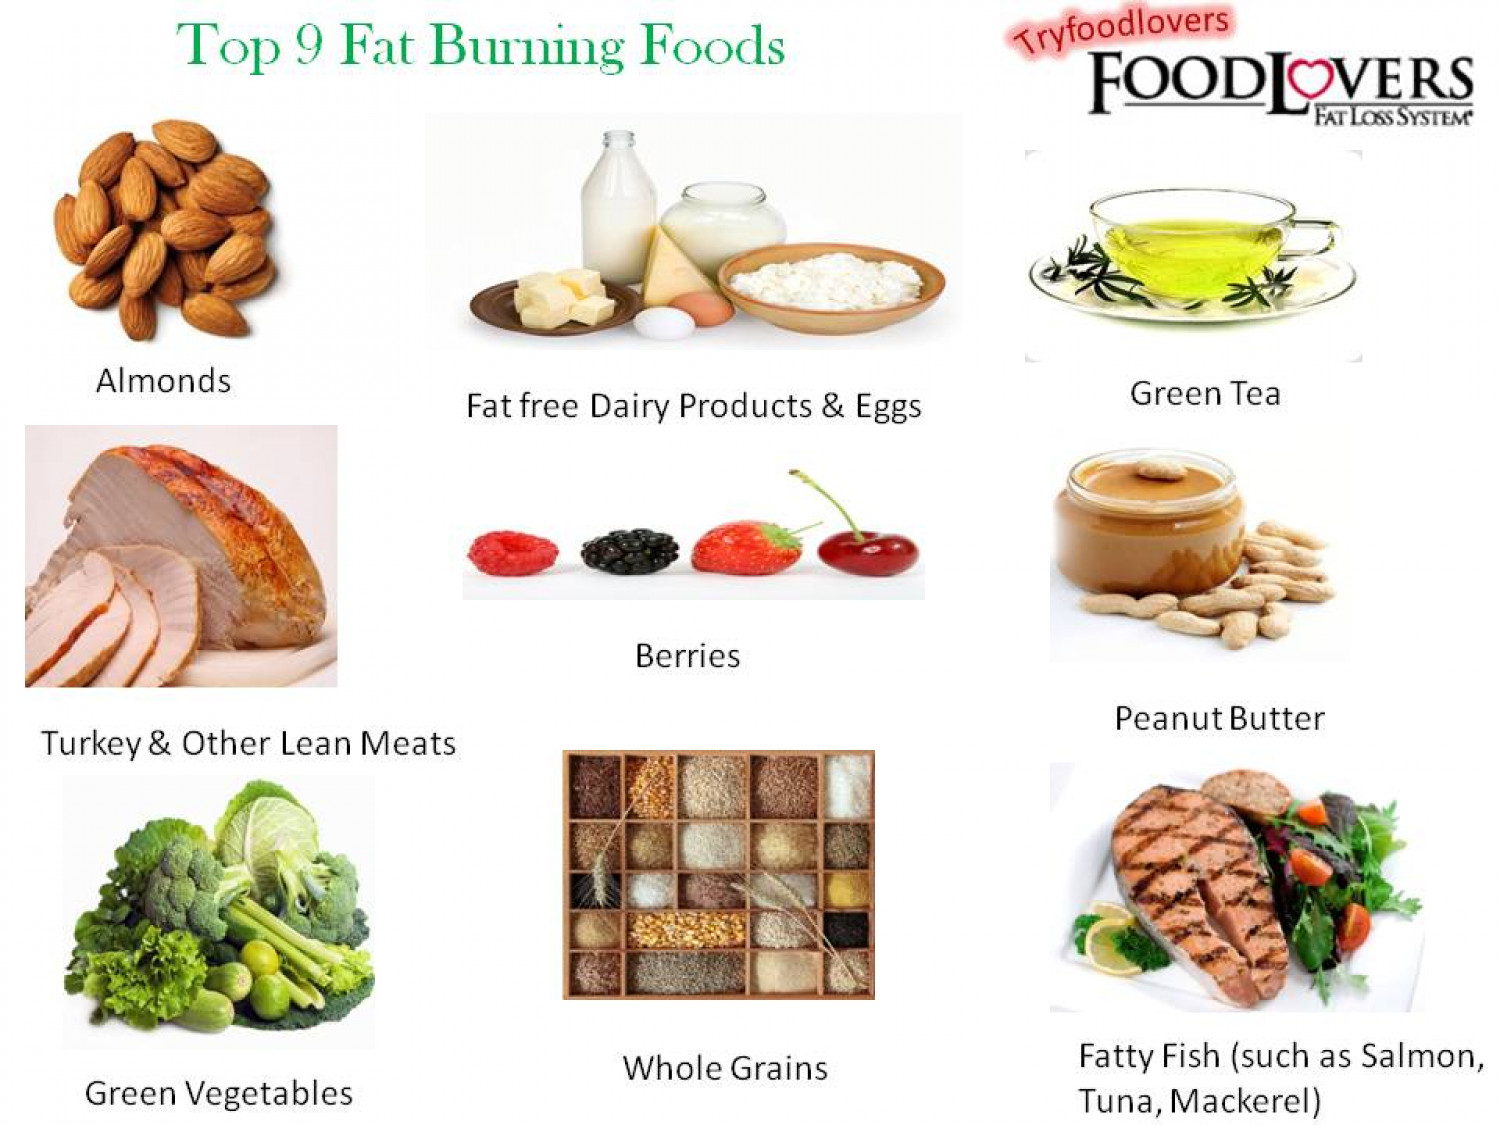 Fat burning foods for breakfast